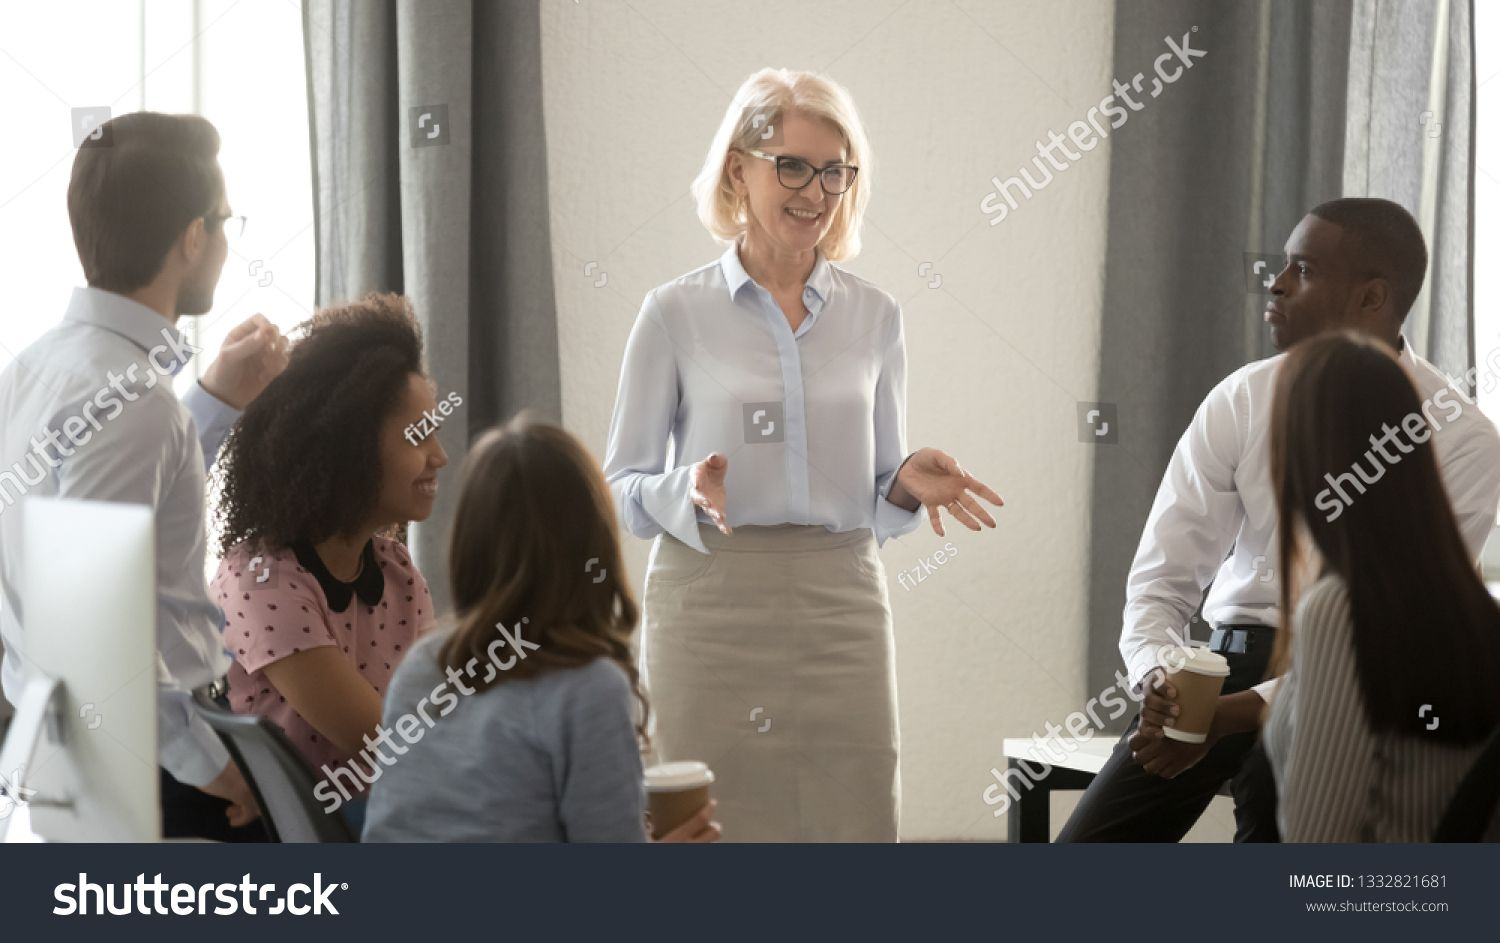 stock-photo-old-woman-mentor-coach-speaker-training-multicultural-interns-g